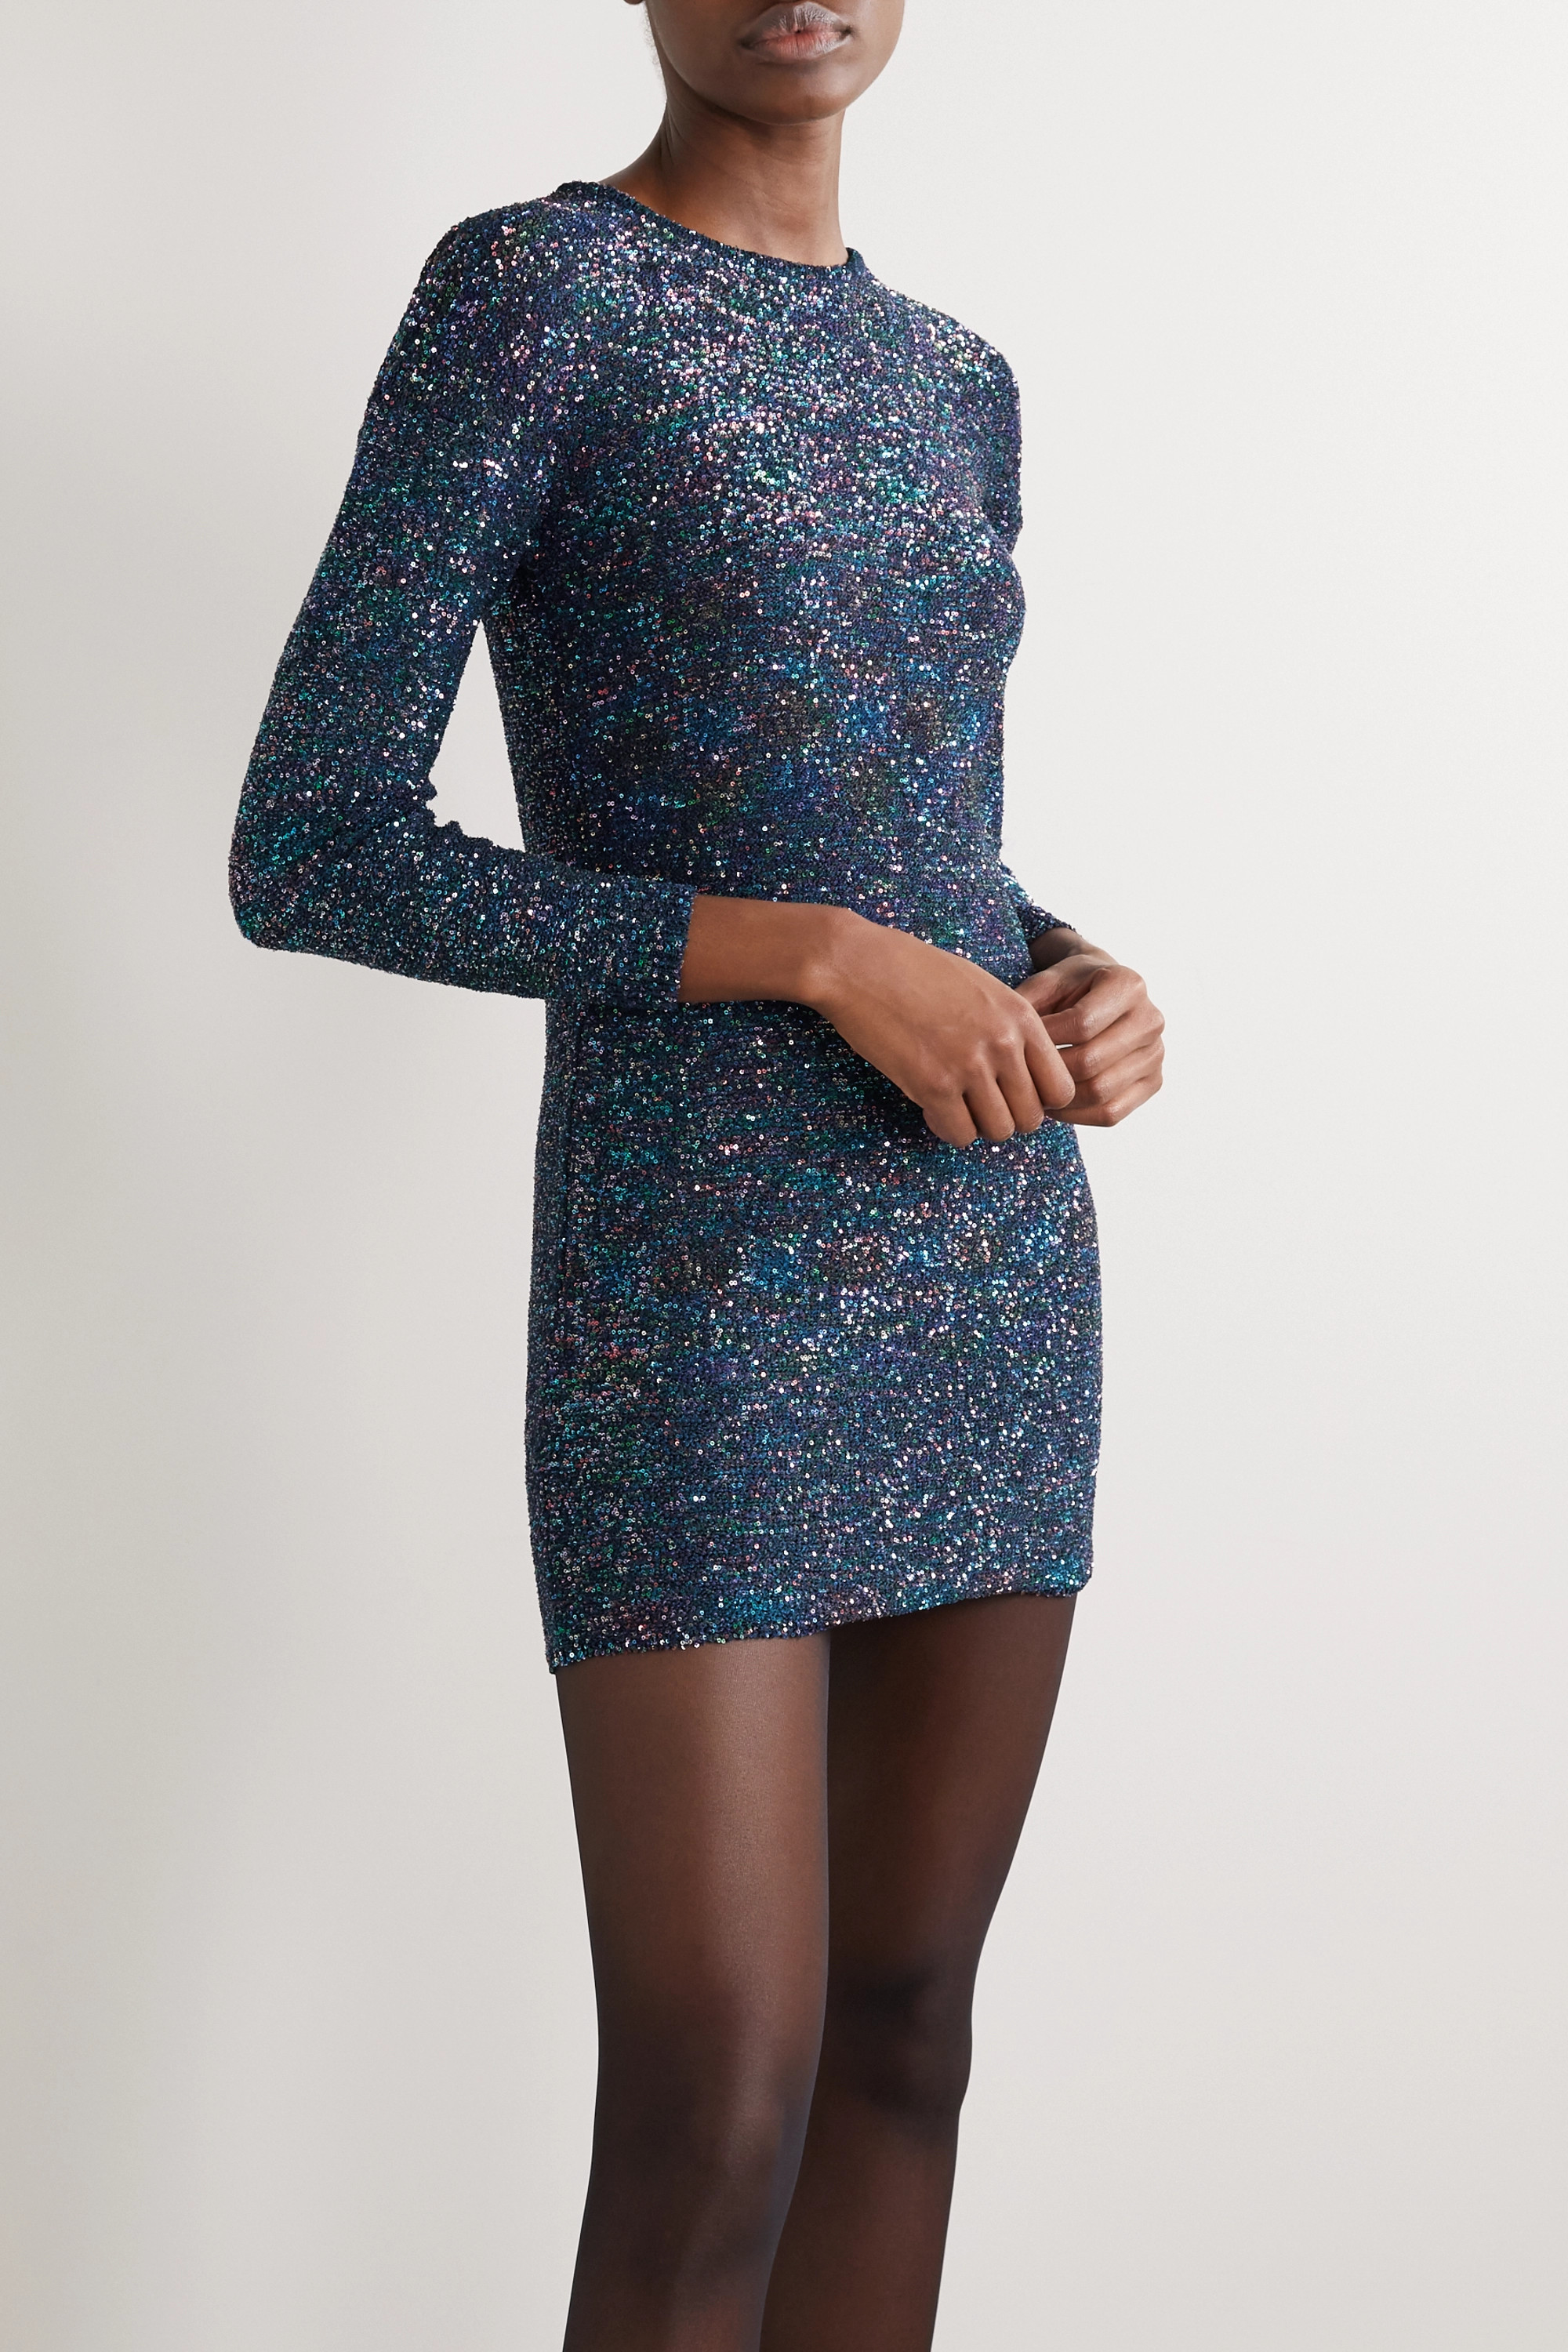 SAINT LAURENT Sequined knitted mini dress